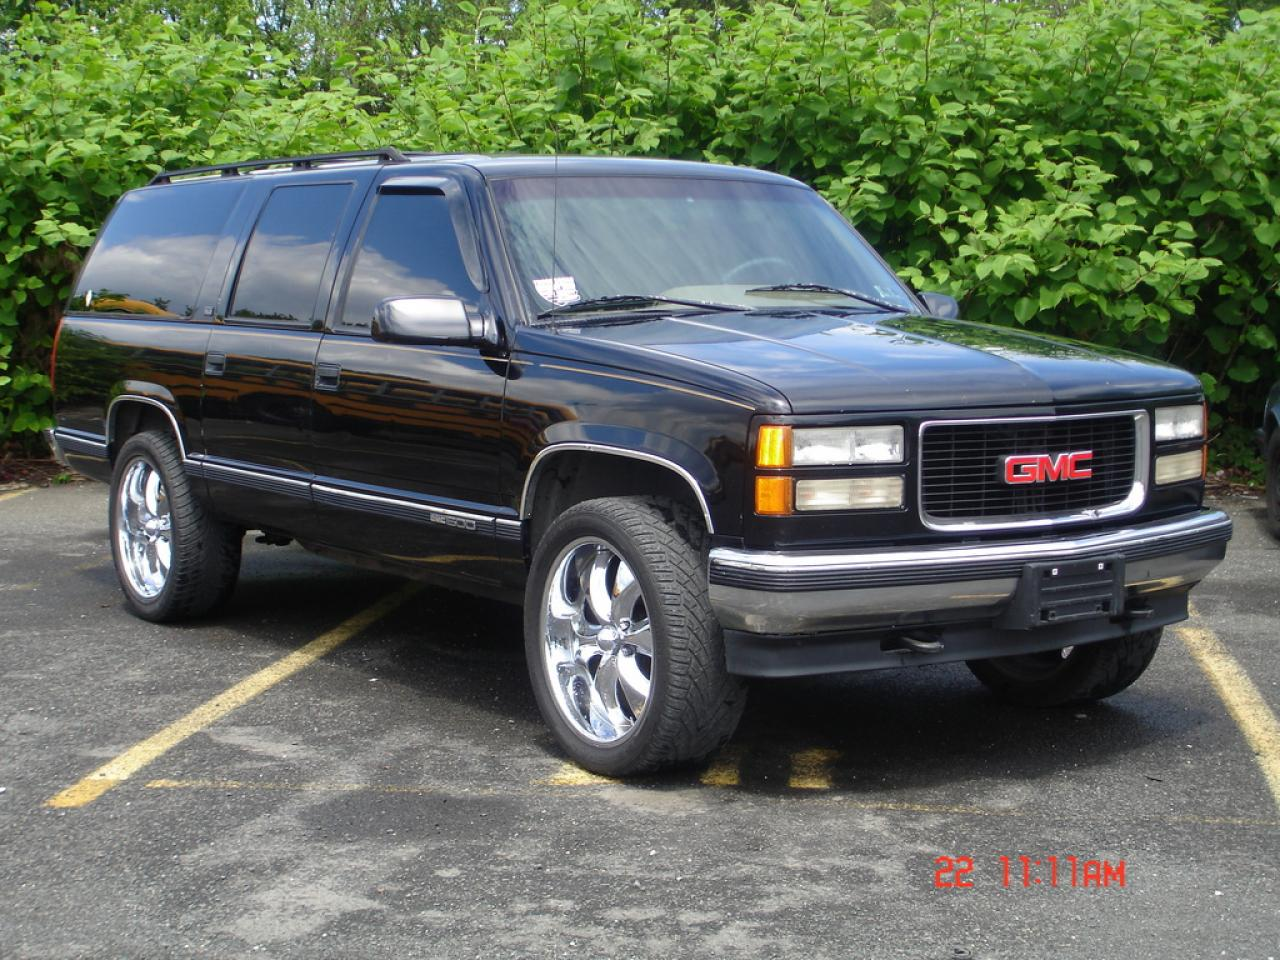 hight resolution of 1995 gmc suburban 1 800 1024 1280 1600 origin